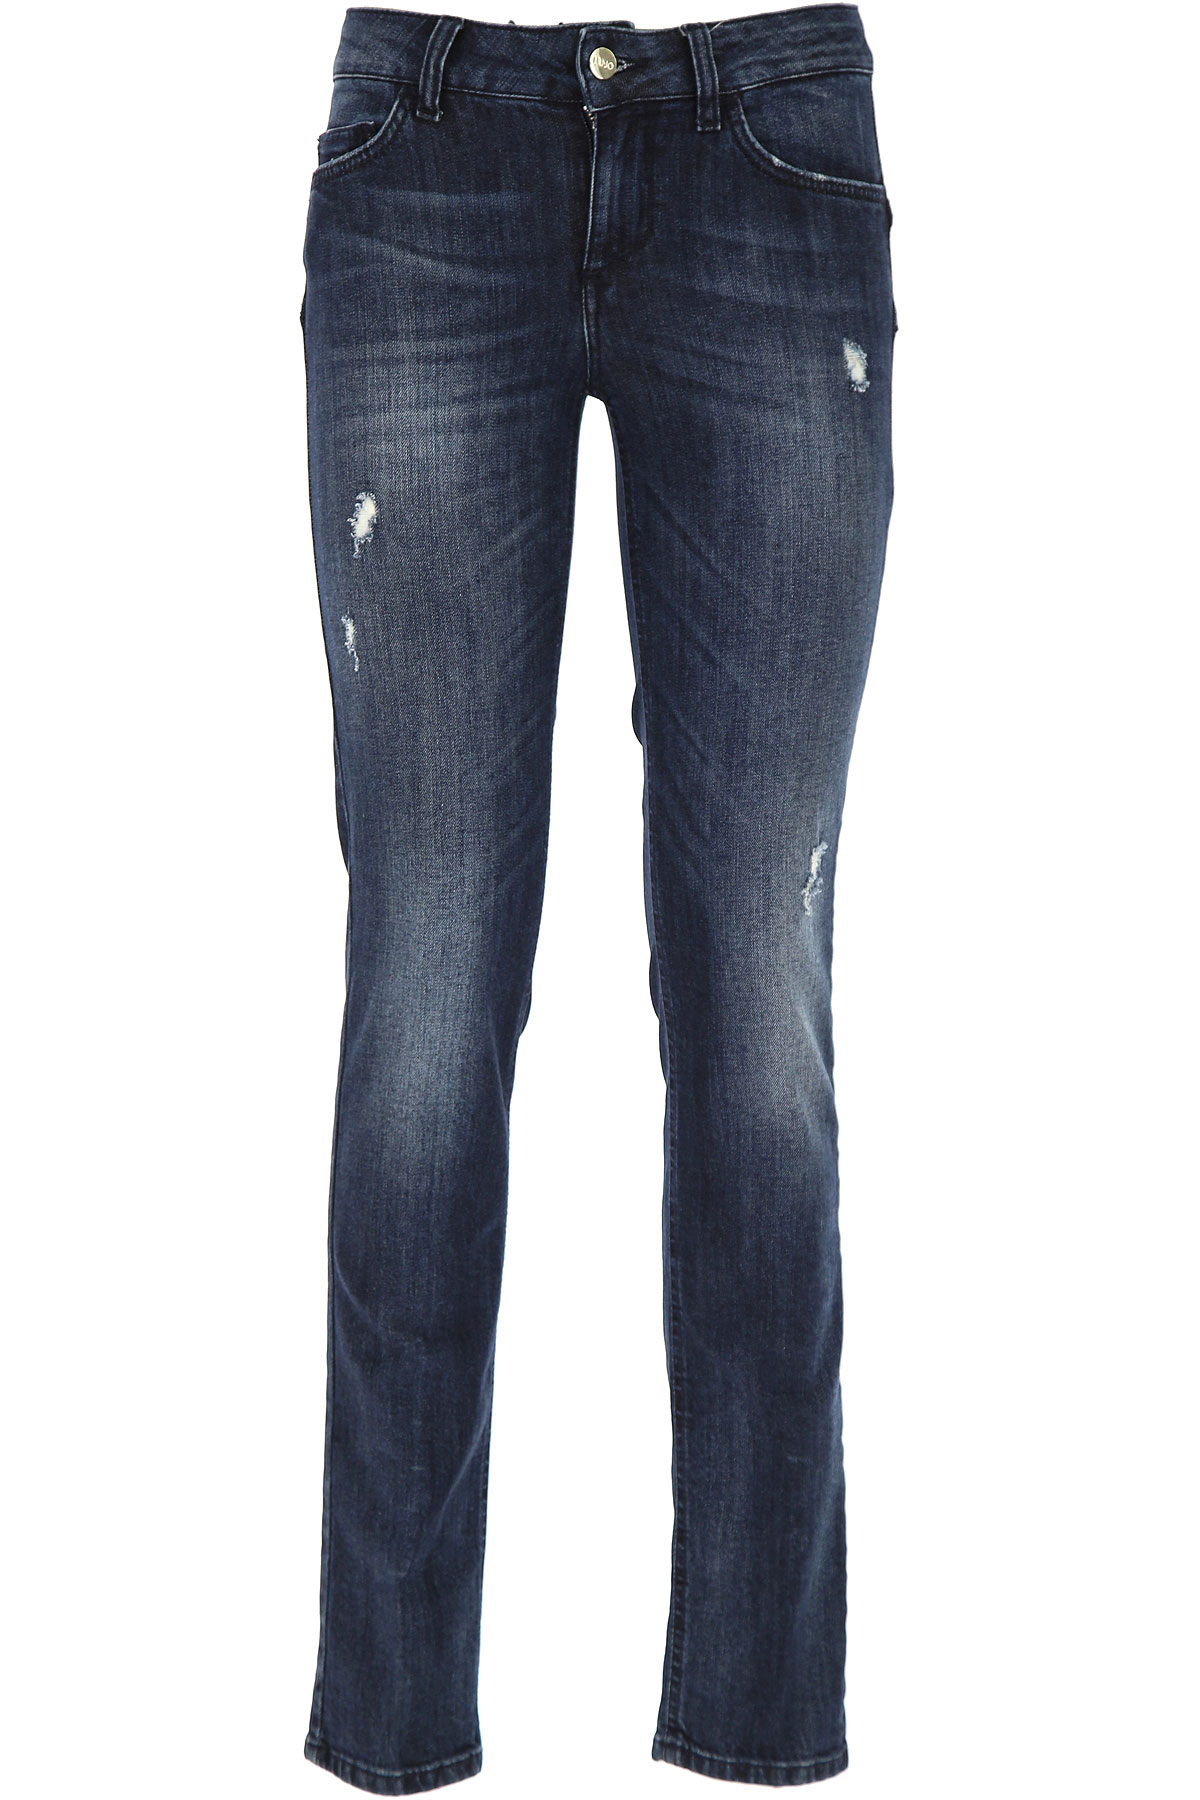 Image of Liu Jo Jeans On Sale in Outlet, Denim, polyester, 2017, 26 27 28 30 32